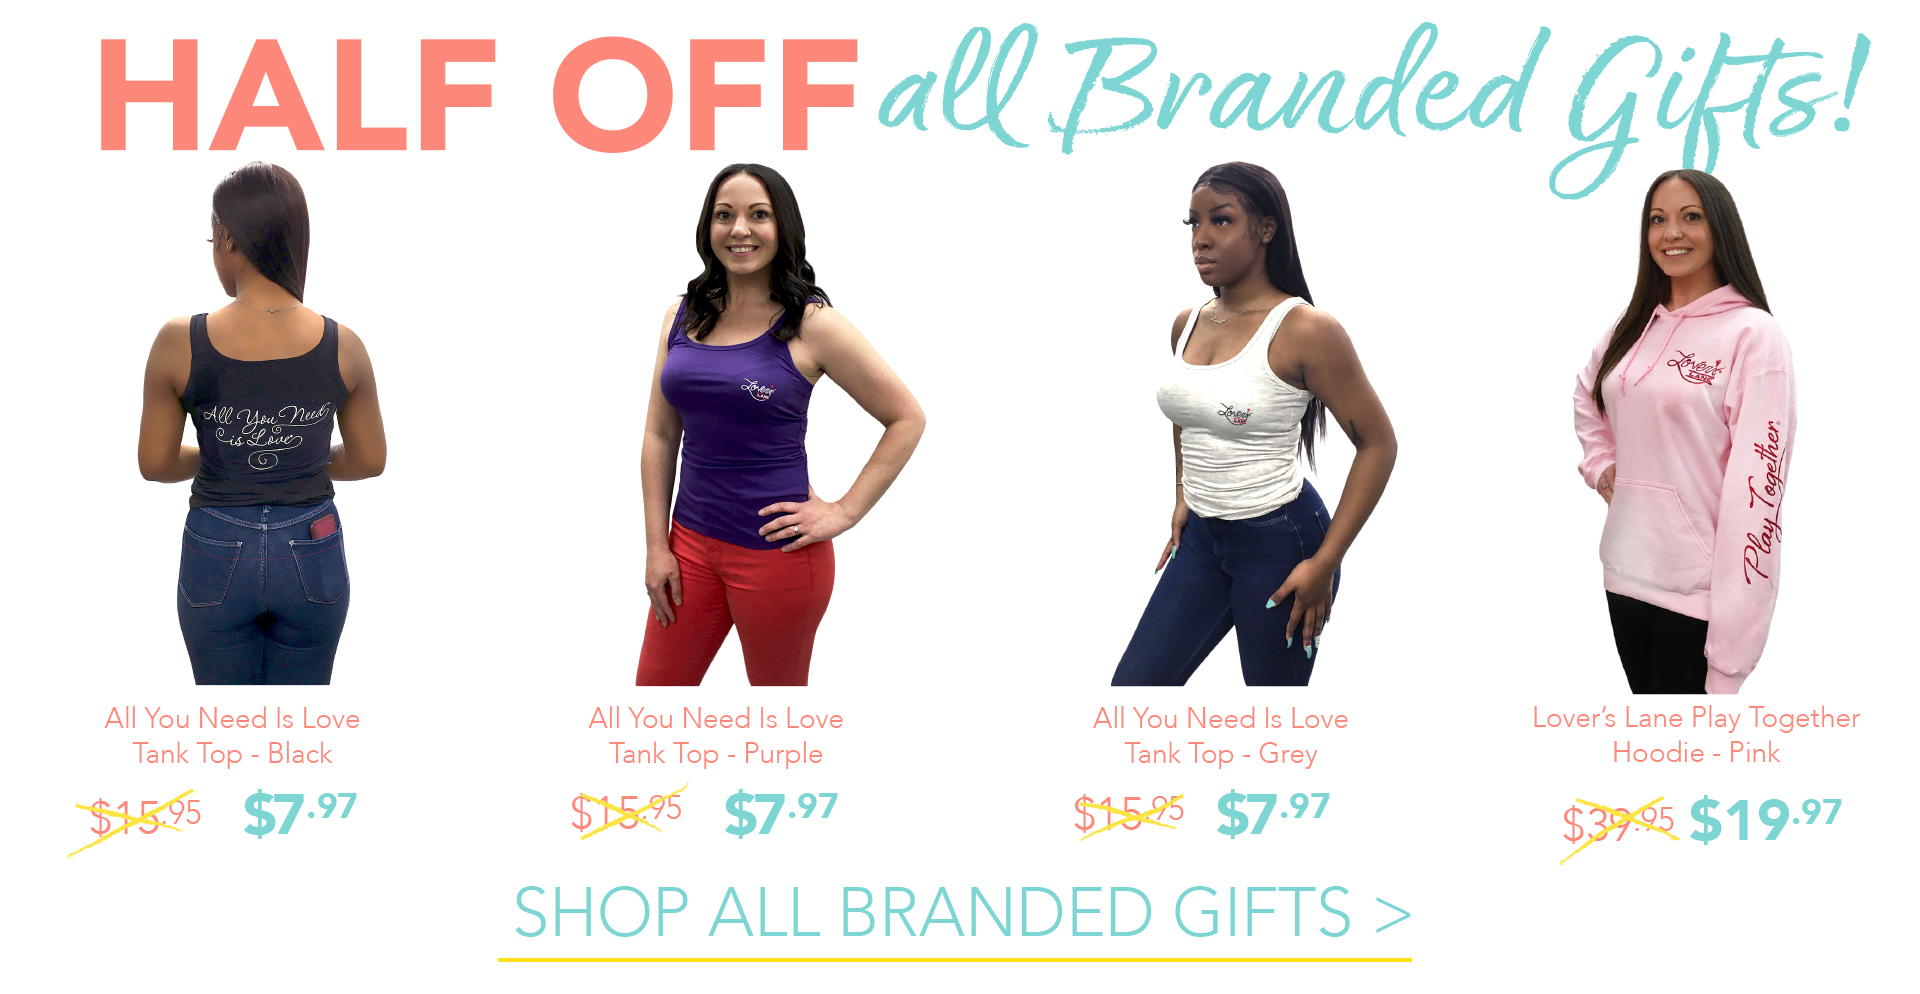 HALF OFF all branded Gifts! Click here to shop Branded Gifts